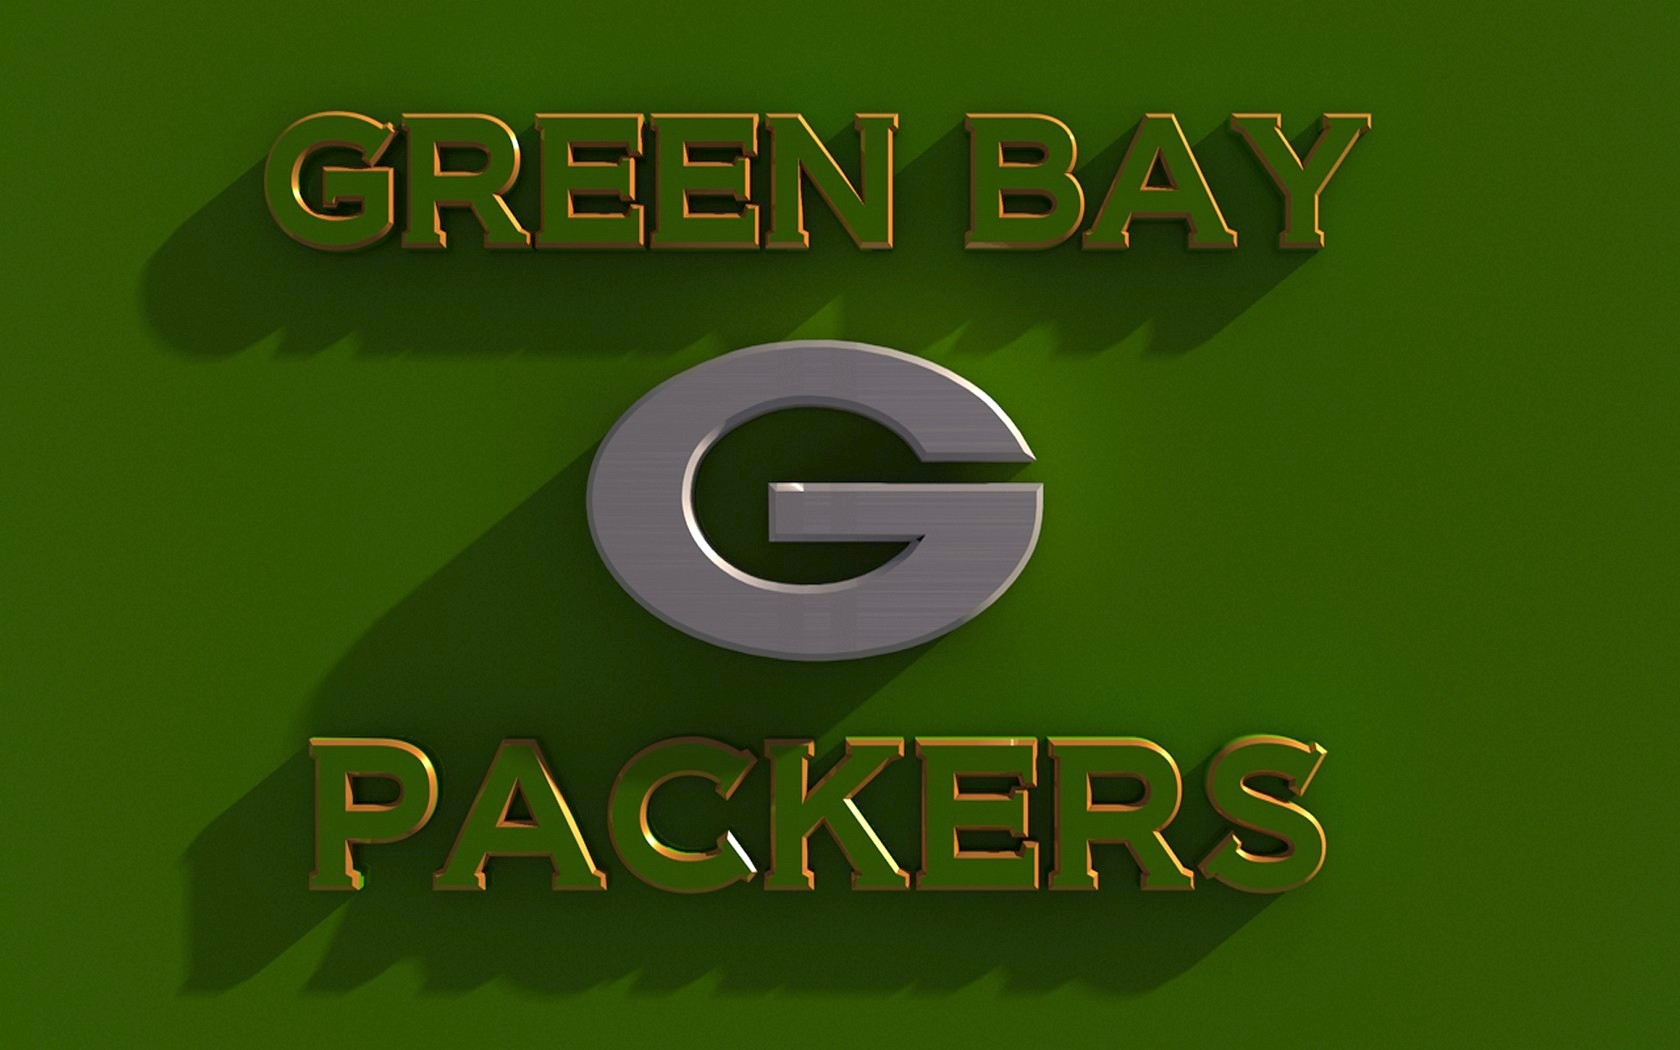 14 packer computer icons images green bay packers